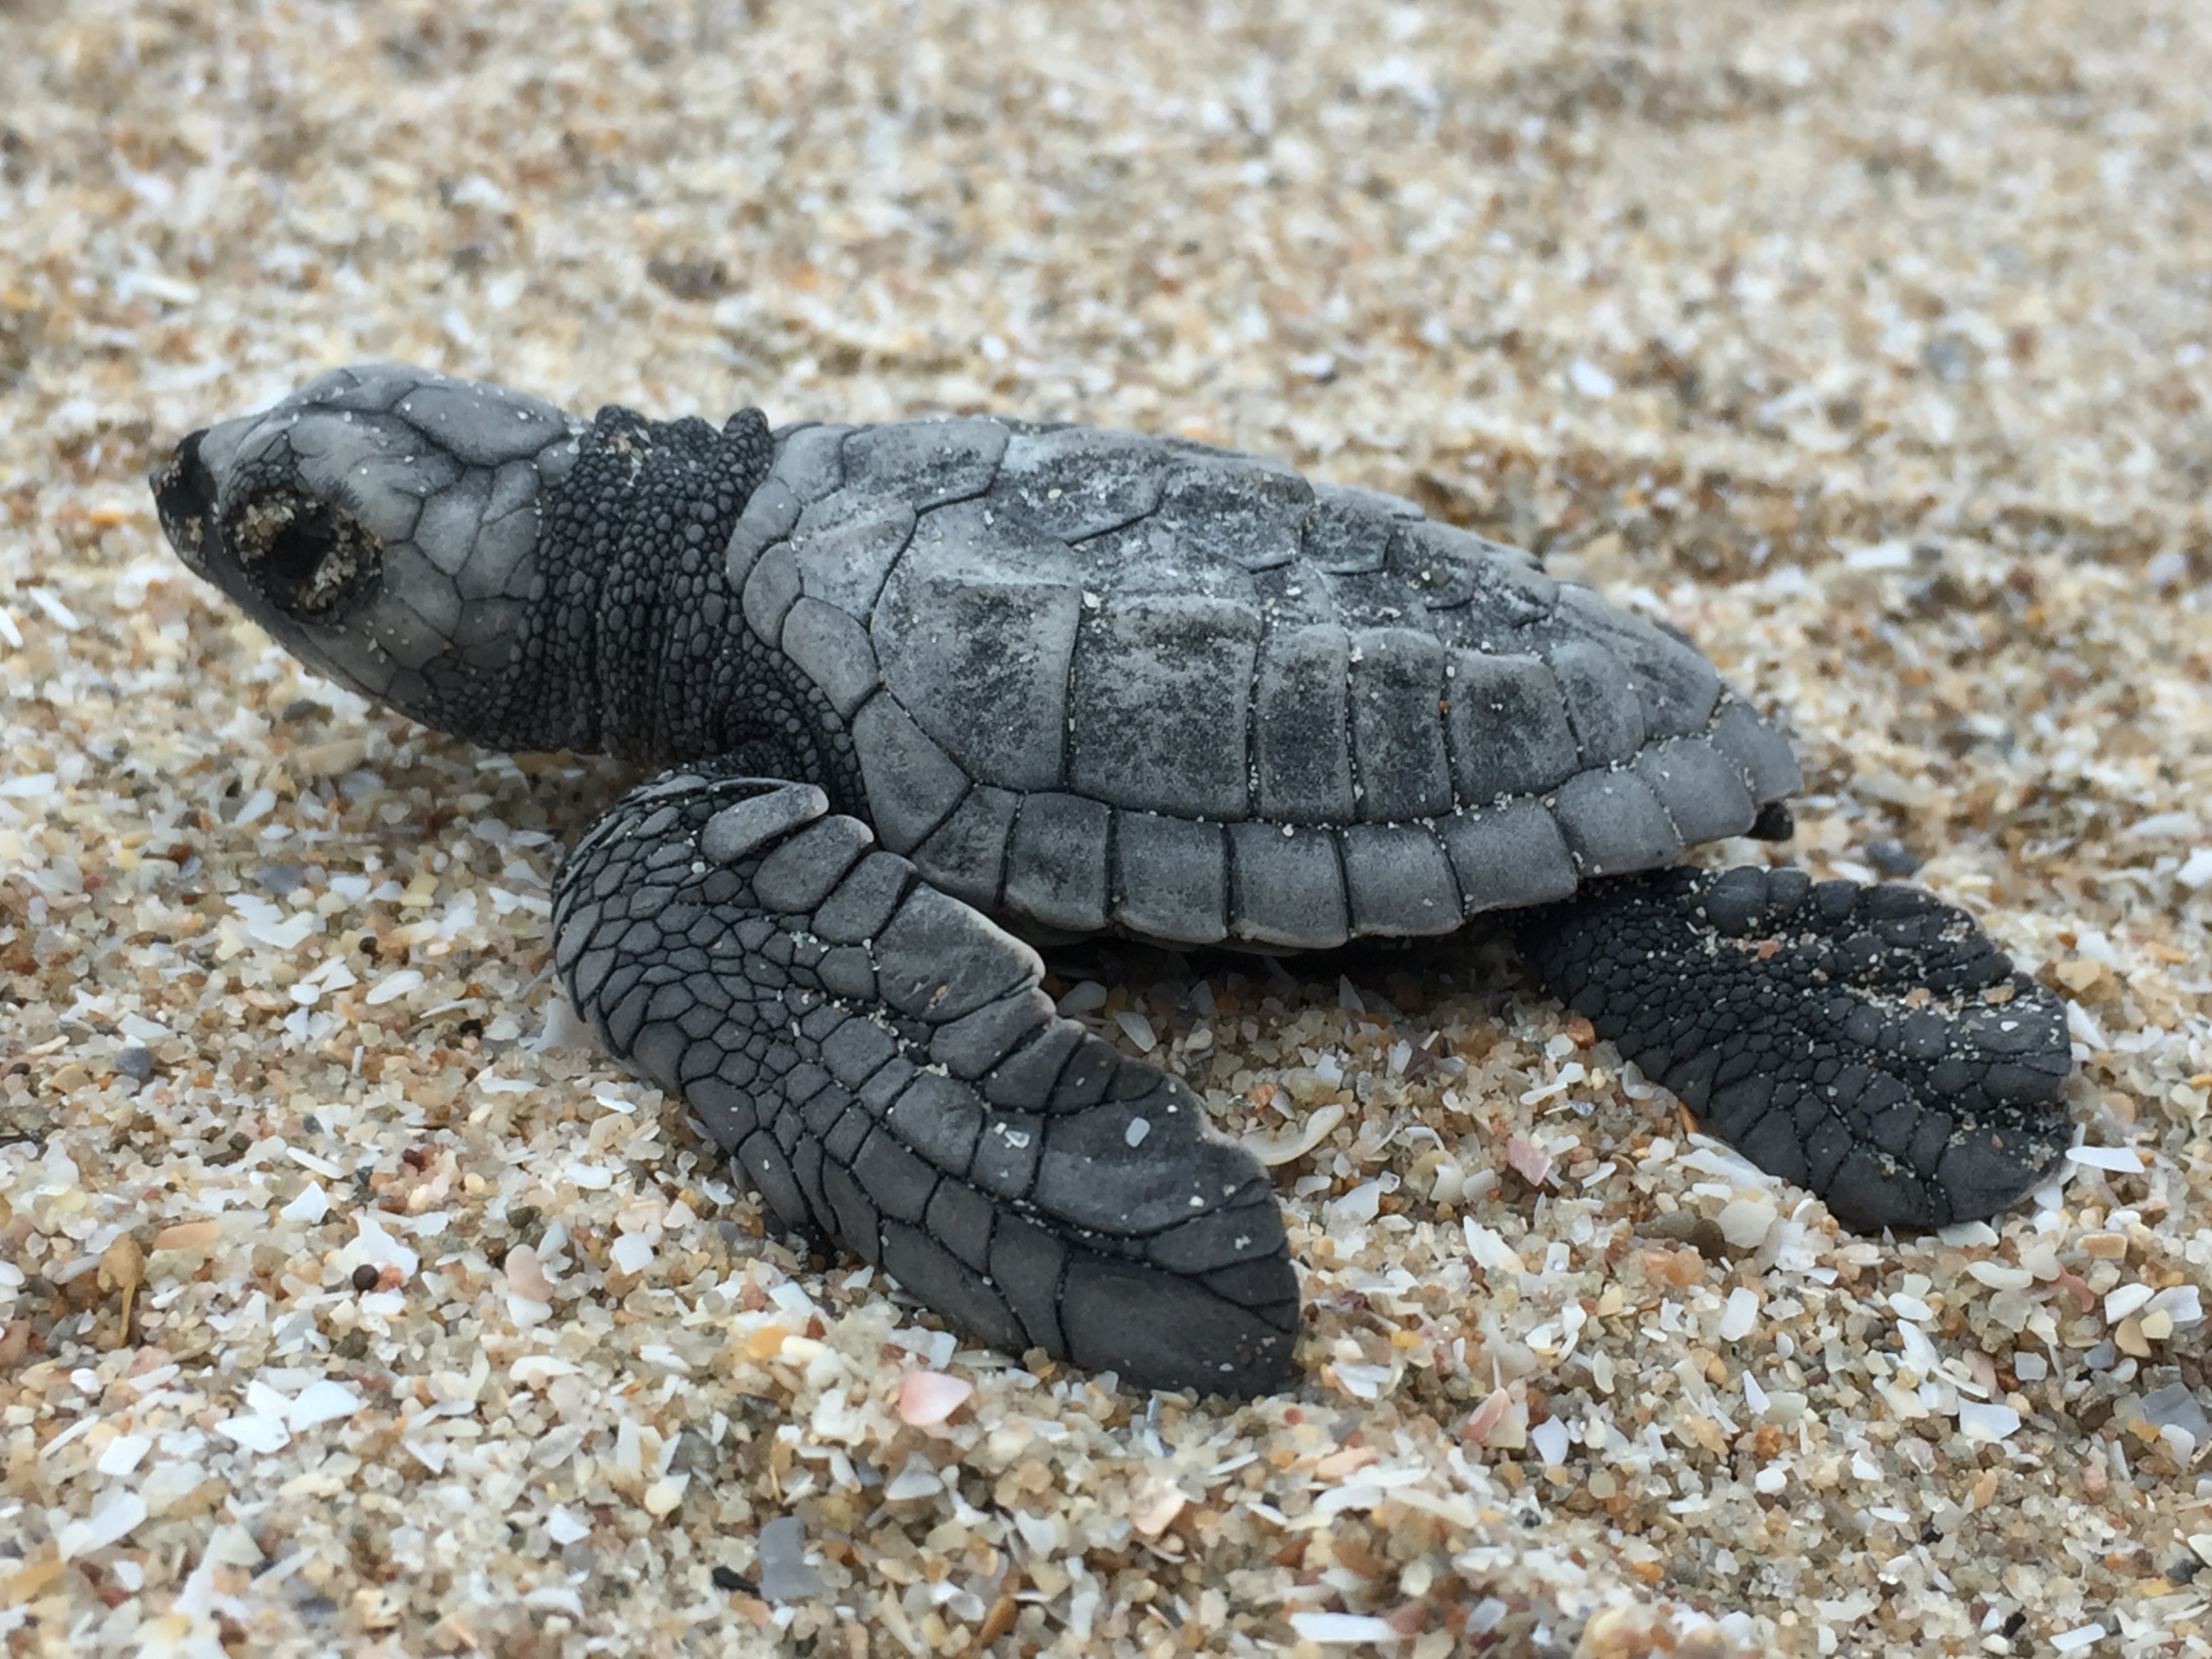 top view of a baby turtle on the sand